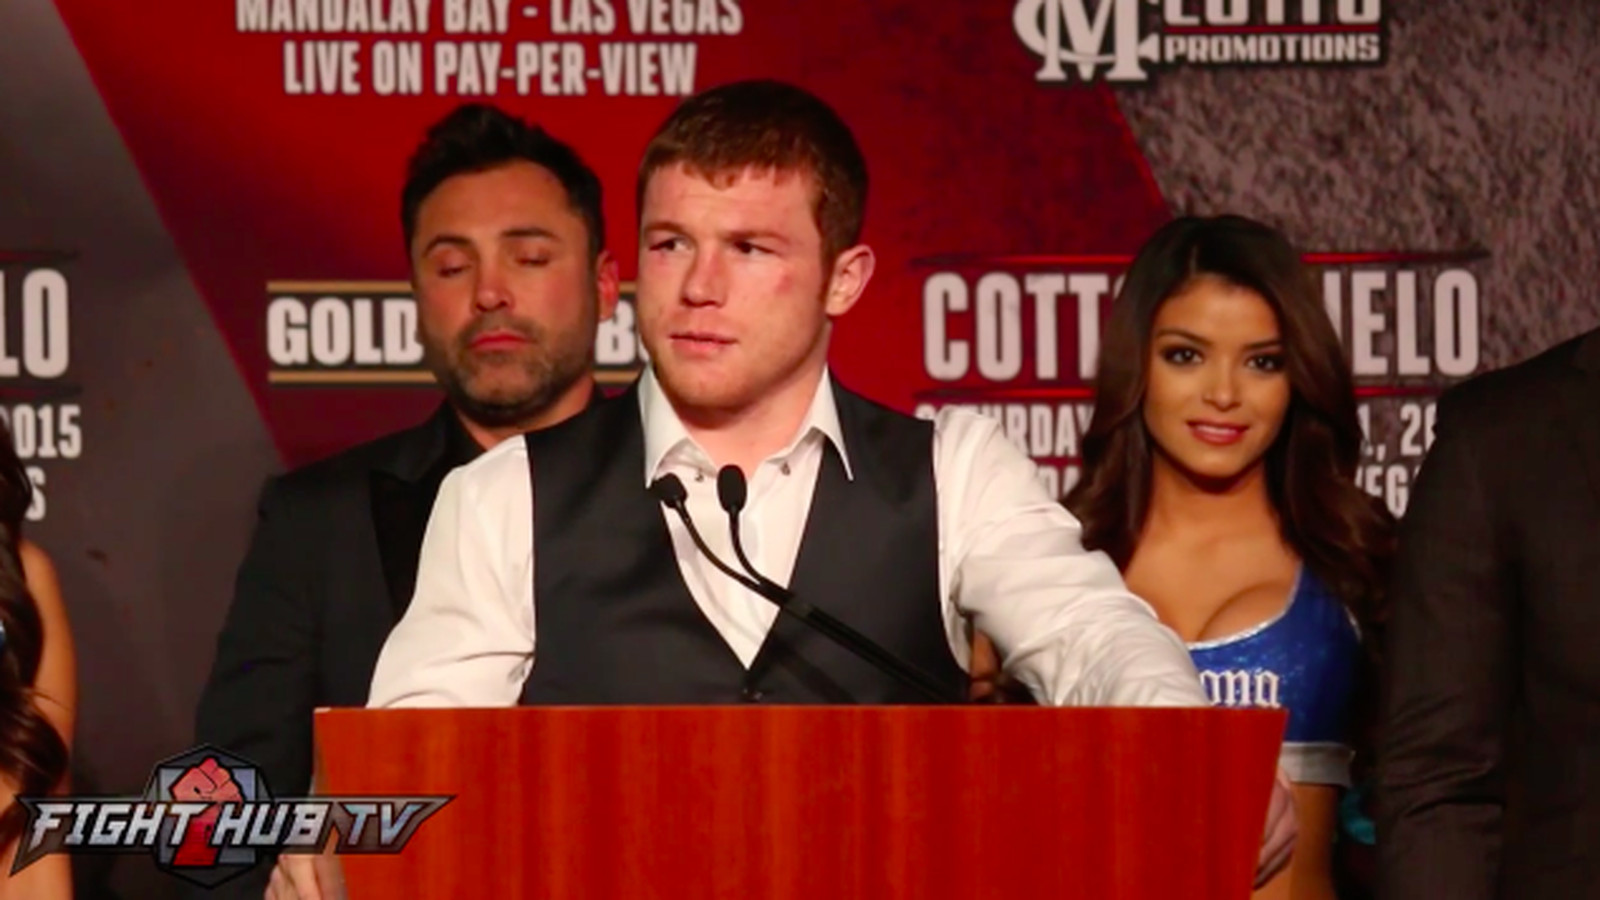 104540562 further pound4pound furthermore 746WY7eNIaM also Cotto Vs Canelo Watch Full Post Fight Press Conference likewise G SoNTgEIVY. on oscar de la hoya vs vargas post fight